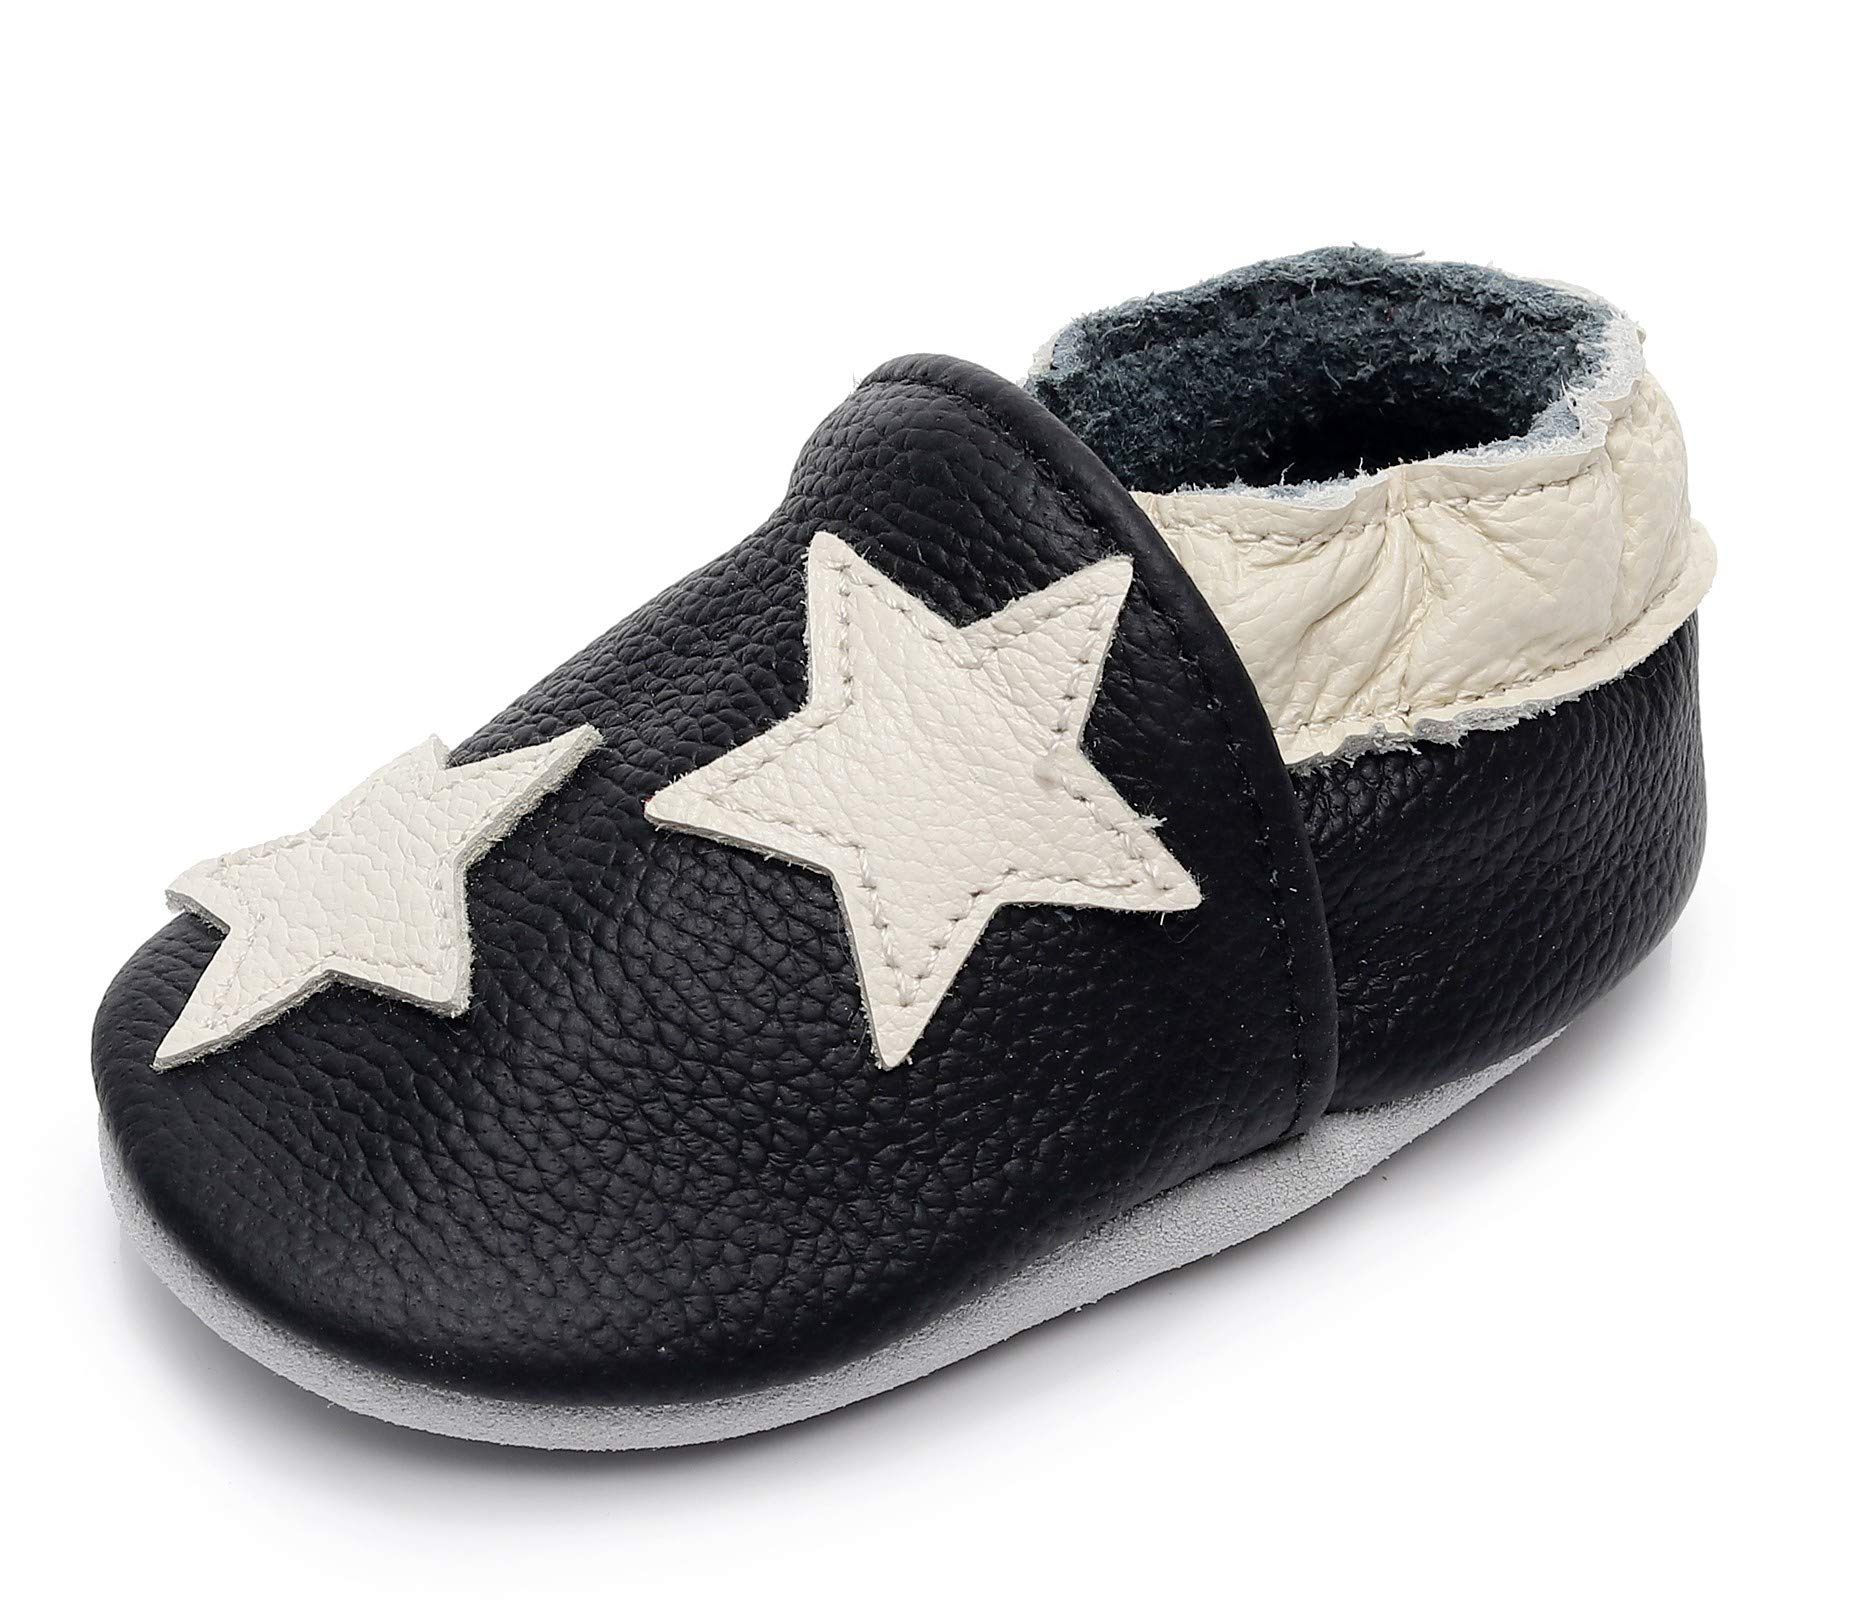 "Bebila  Baby Boys Girls Shoes Leather Baby Moccasins Soft Soled Infant Crawling Slippers for 0-24 Months  (US 6.5/5.31""/ 12-18months/see Size Chart, Star)"